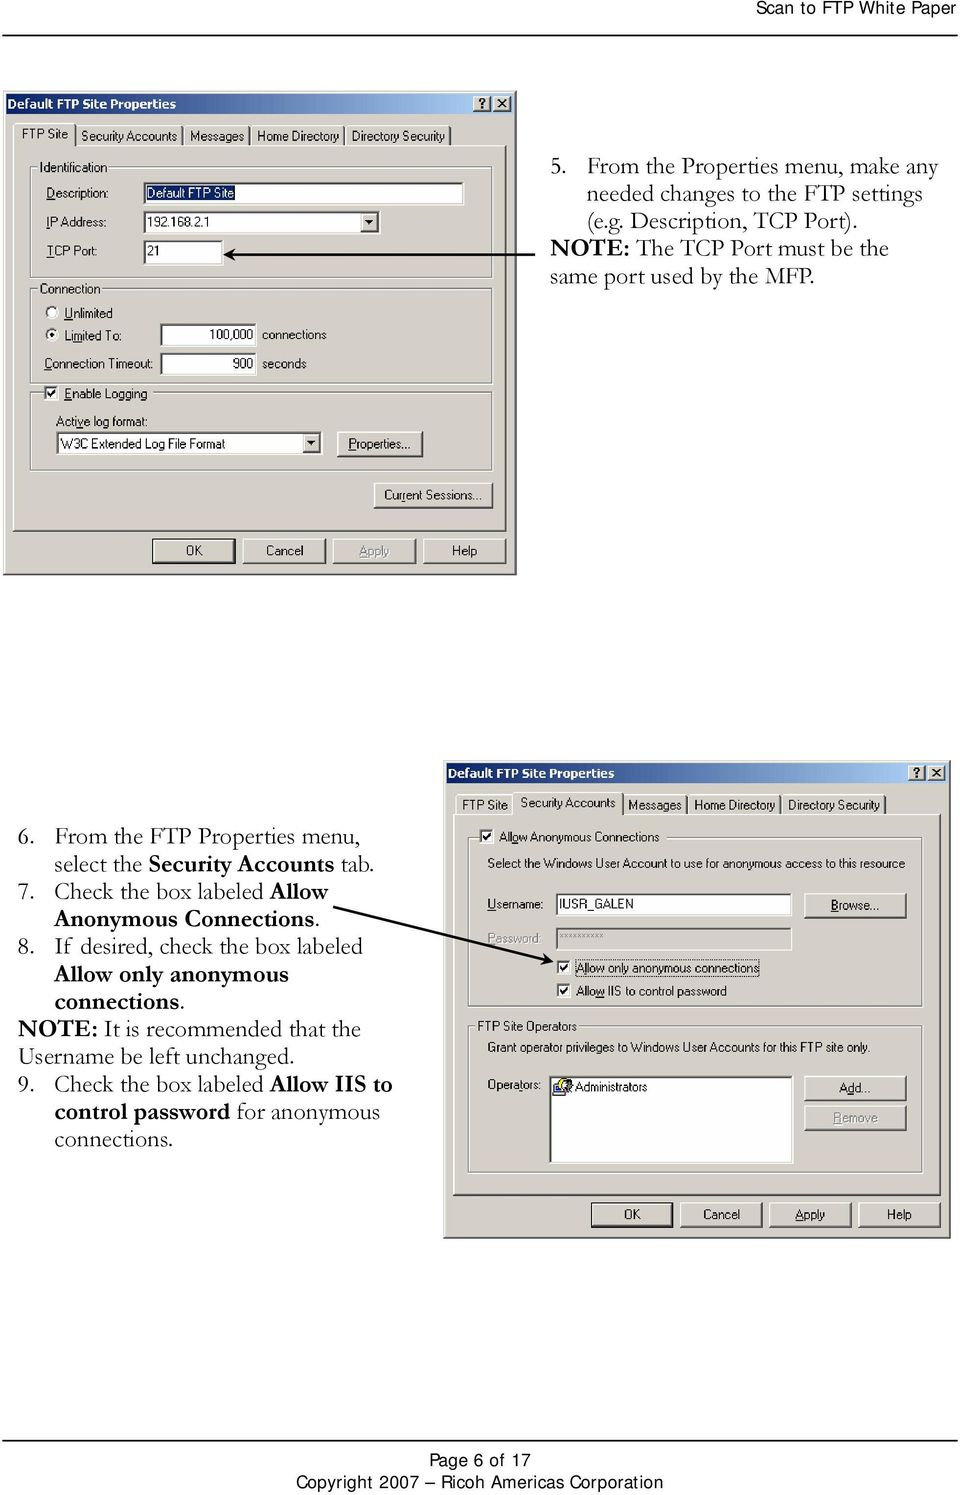 Scan to FTP White Paper Ricoh Americas Corporation May PDF